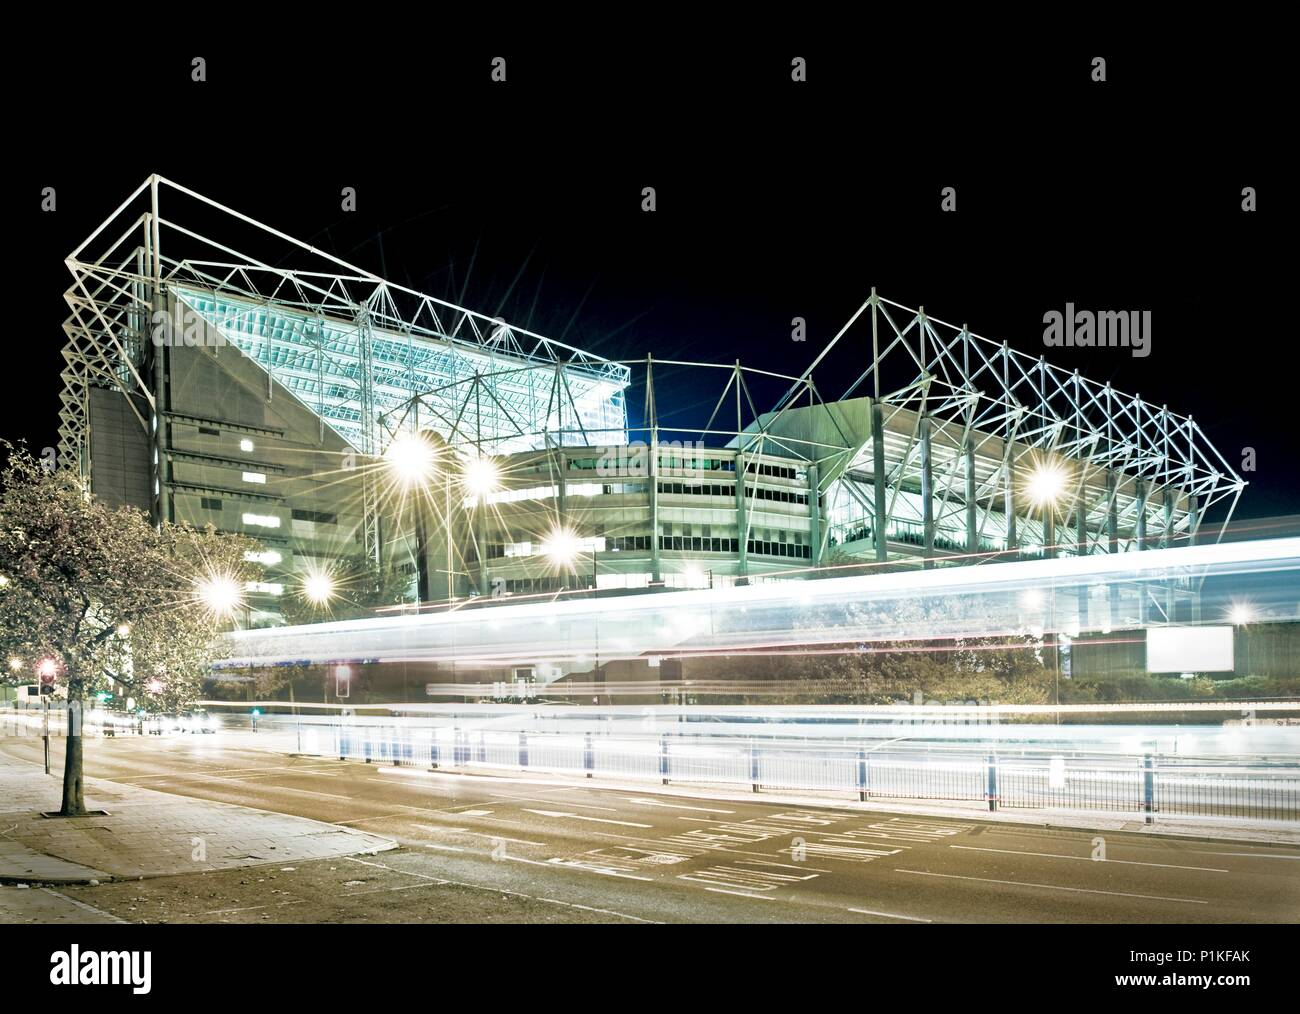 St. James's Park, Newcastle-upon-Tyne, c1998-c2017. View of the home of Newcastle United Football Club at night. The stark lighting helps the stadium  - Stock Image